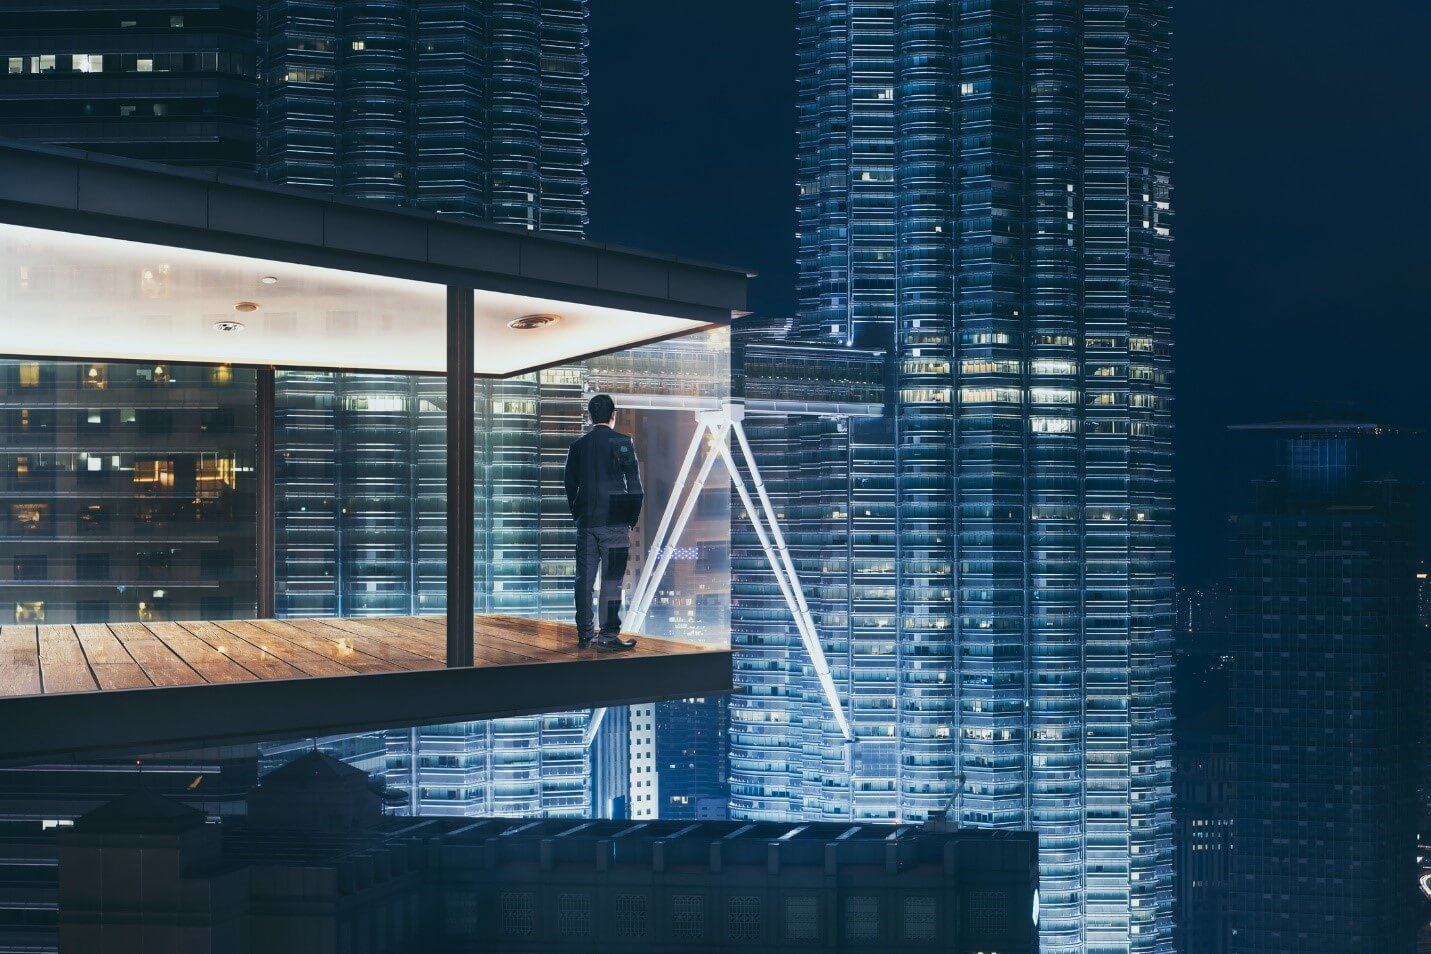 Man standing in a skyscraper